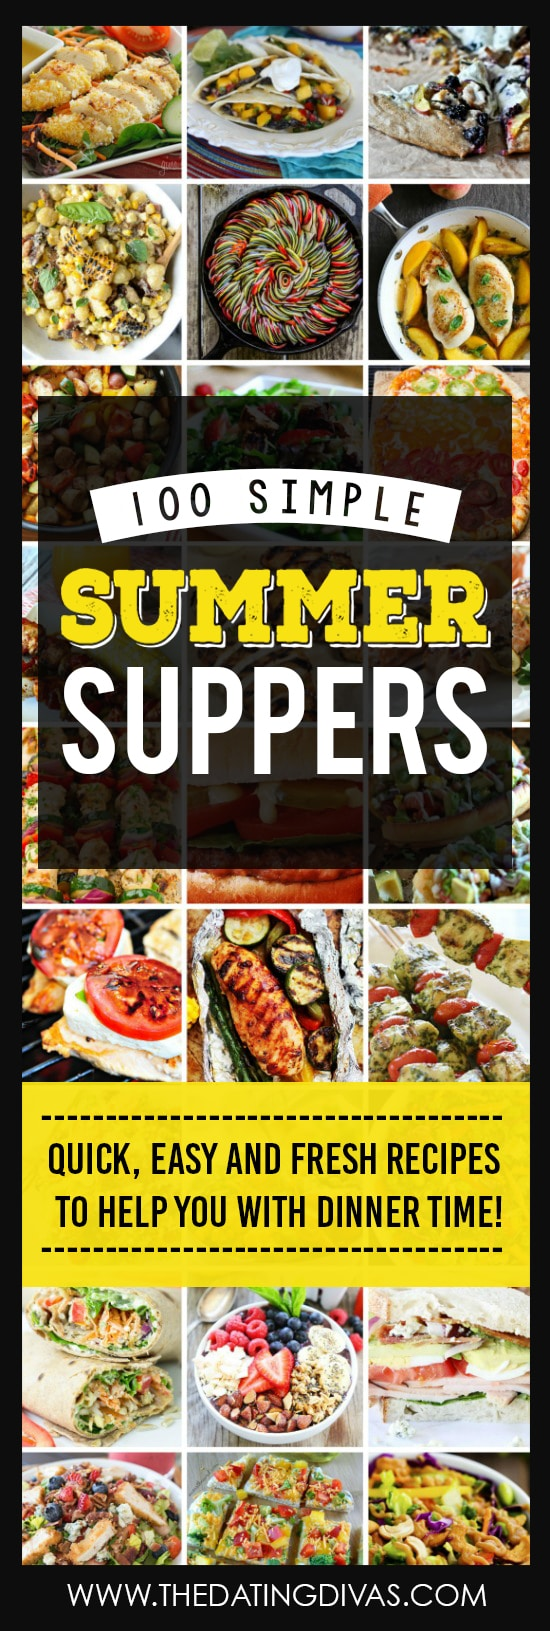 100 Simple Summer Suppers